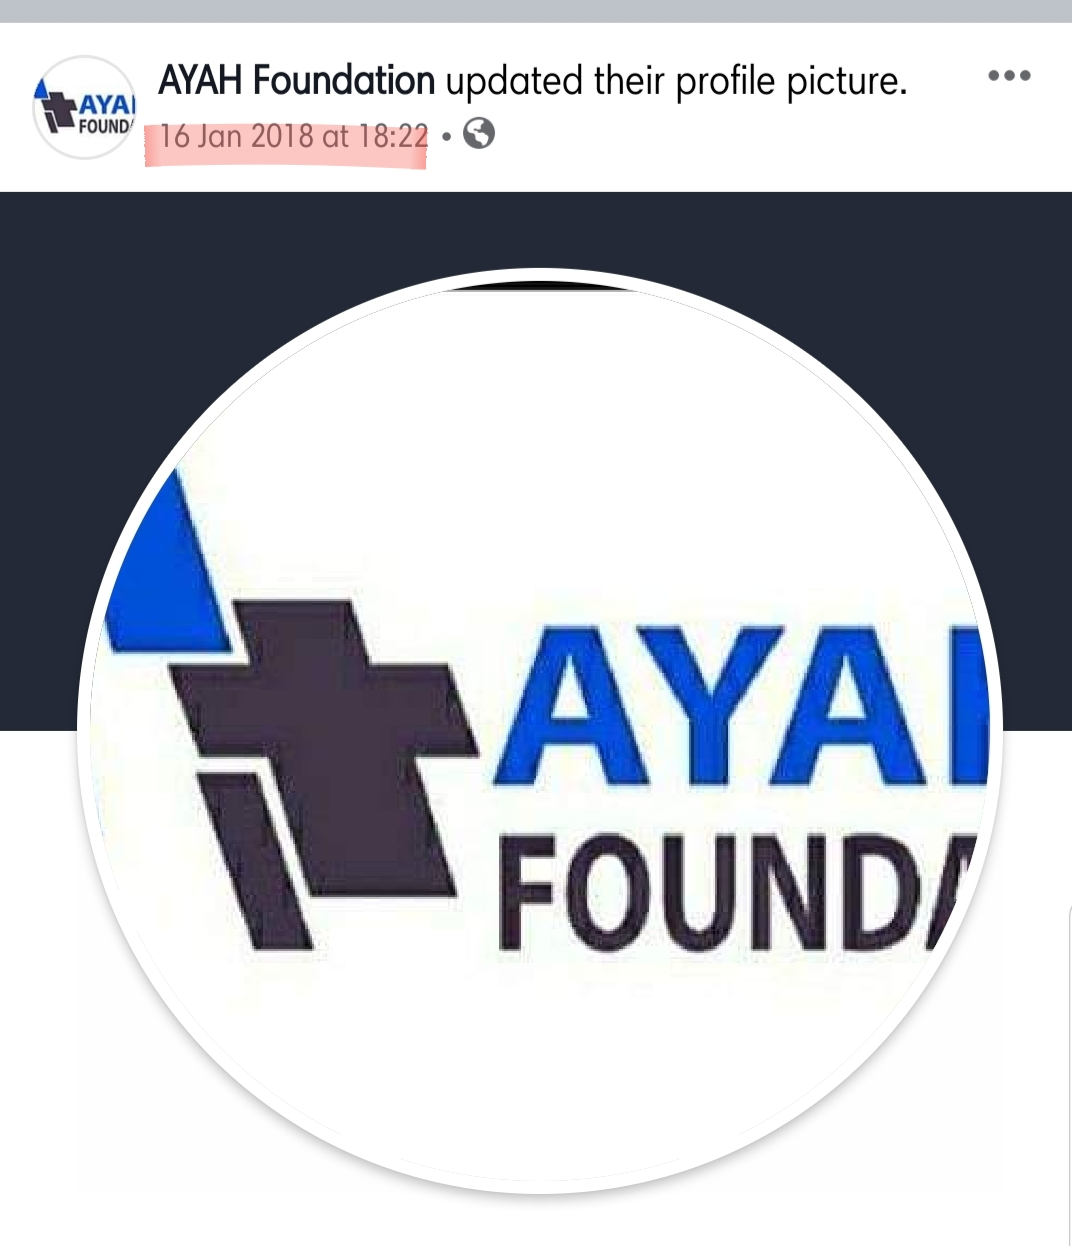 "Ayah ""Foundation"" was already taking advantage of gullible Cameroonians on Facebook even when the association was not yet registered, in Jan 2018, they already had a logo and a page on Facebook"